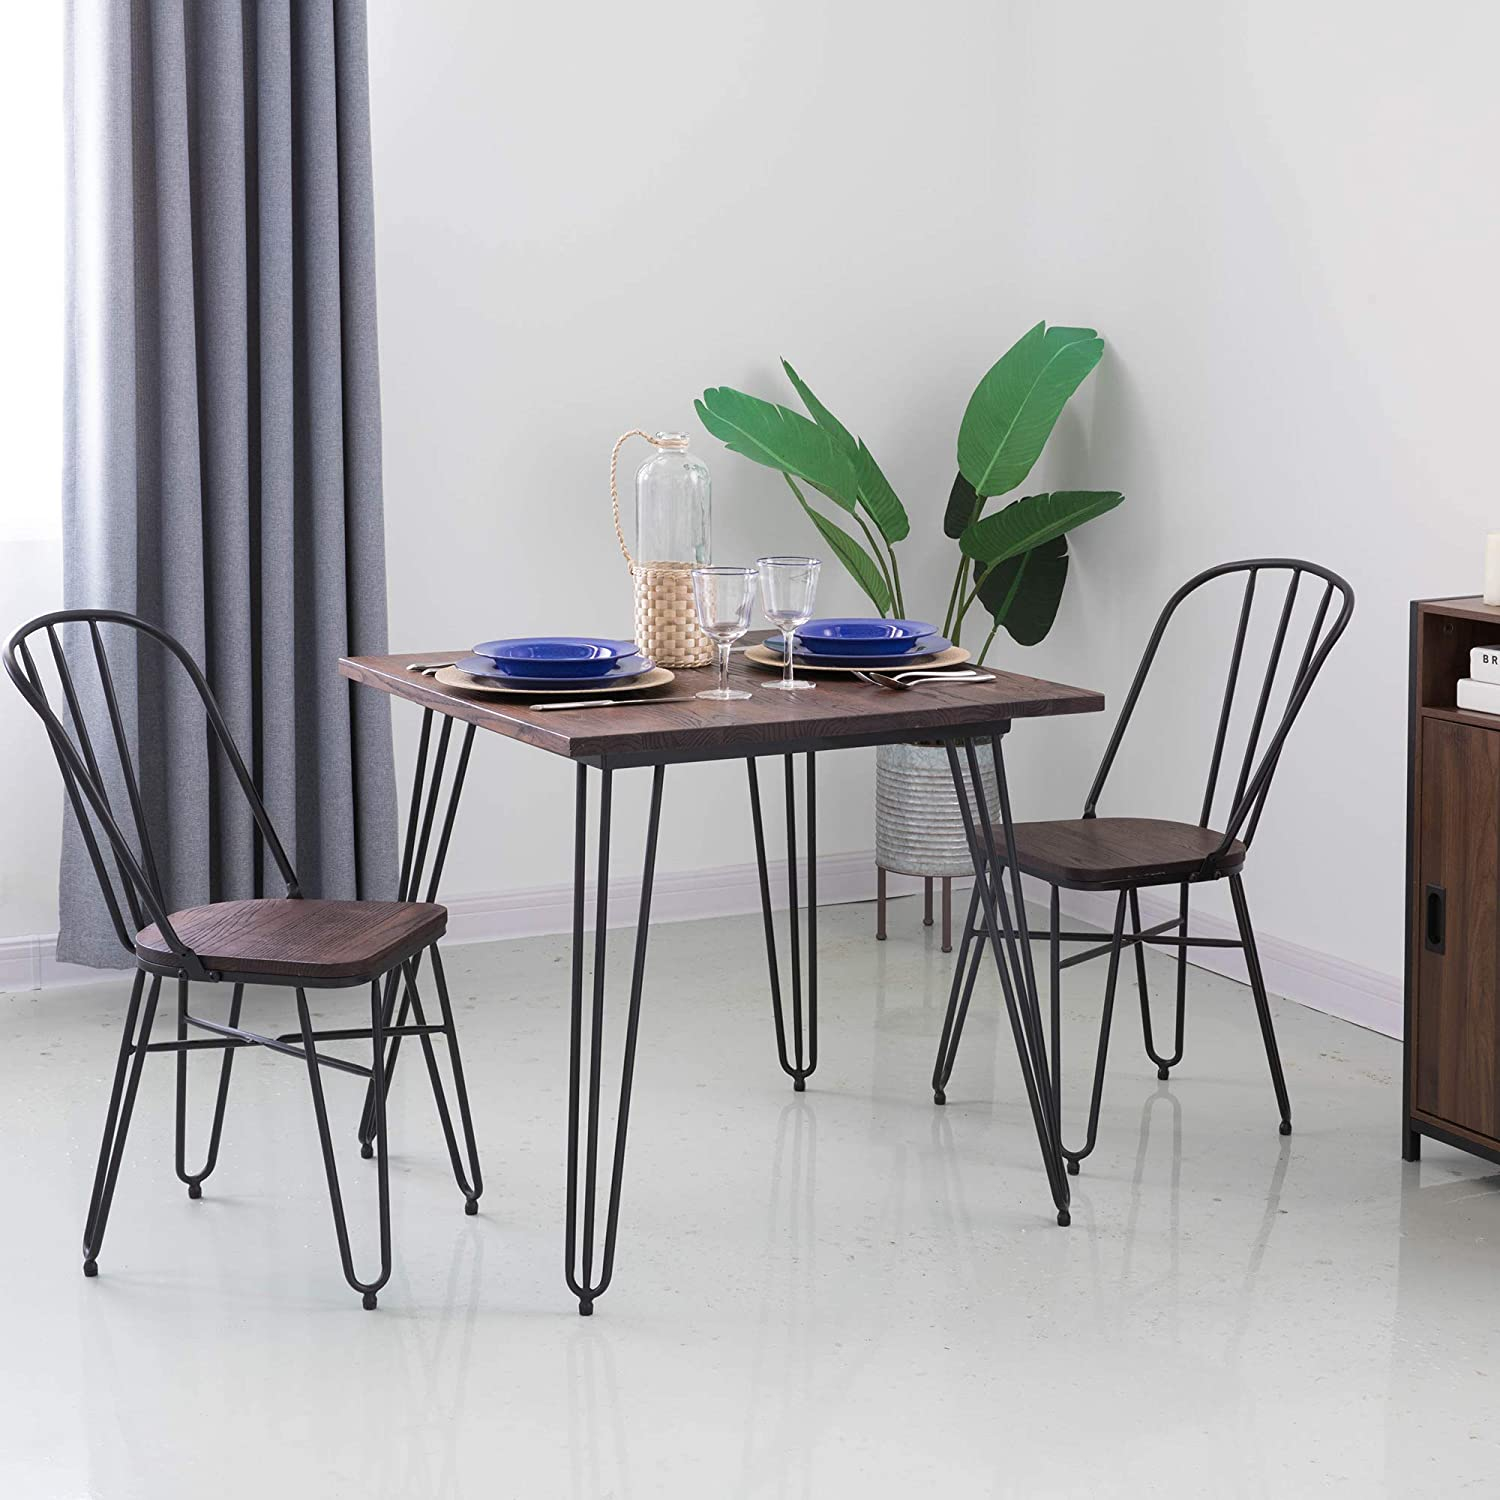 Amazon Com Glitzhome Industrial Farmhouse Dining Table With Solid Wood Top Metal Legs Dining Chairs With High Backrest Bistro Table And Chairs Set Table And 2 Pieces Chair Table Chair Sets